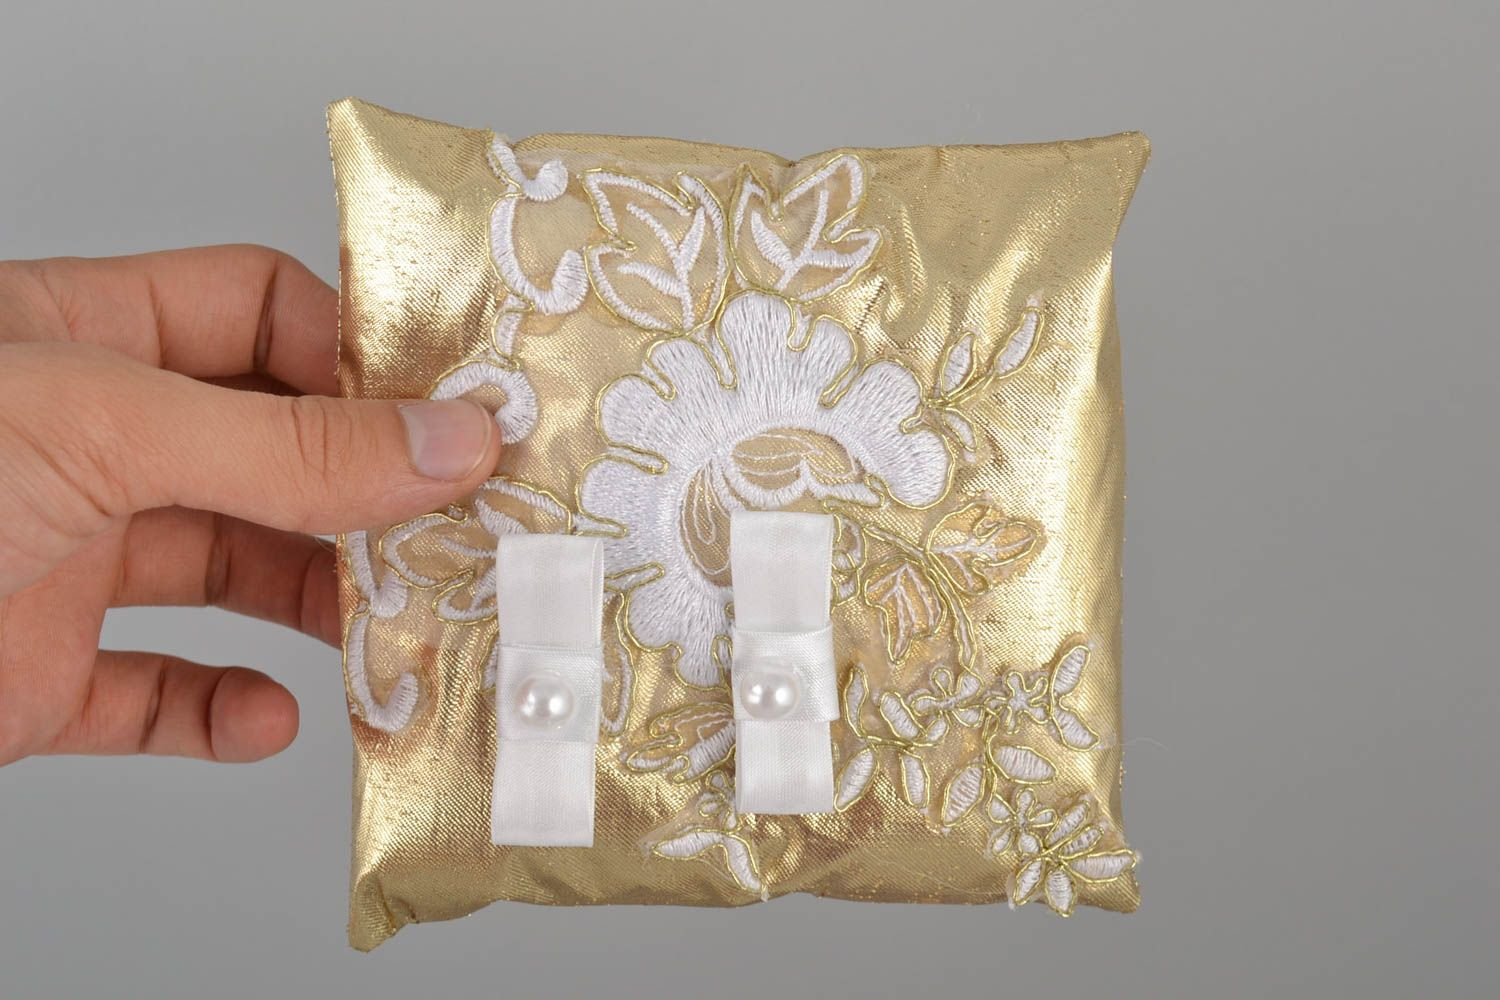 Details about  /HAND MADE WEDDING RING PILLOW//DUCHESS SATIN//GOLD//HEARTS//19x19cm//7.5/'/'x7.5/'/'